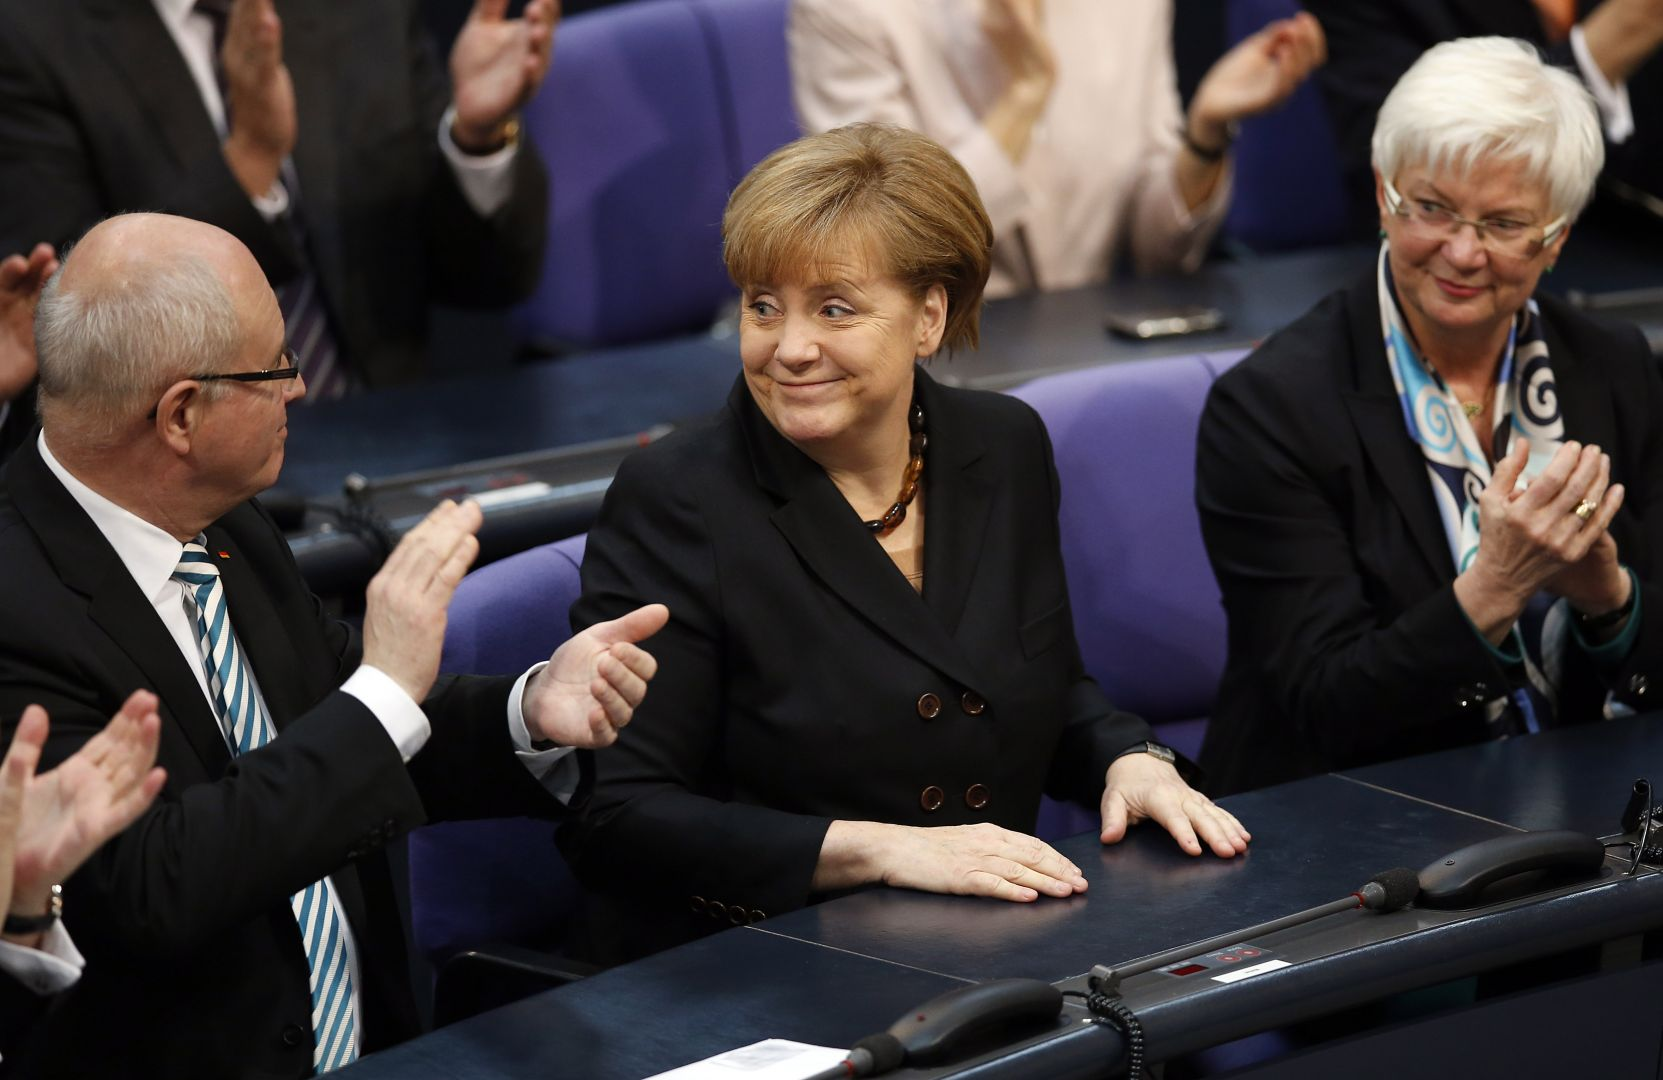 Merkel elected as German chancellor for third term